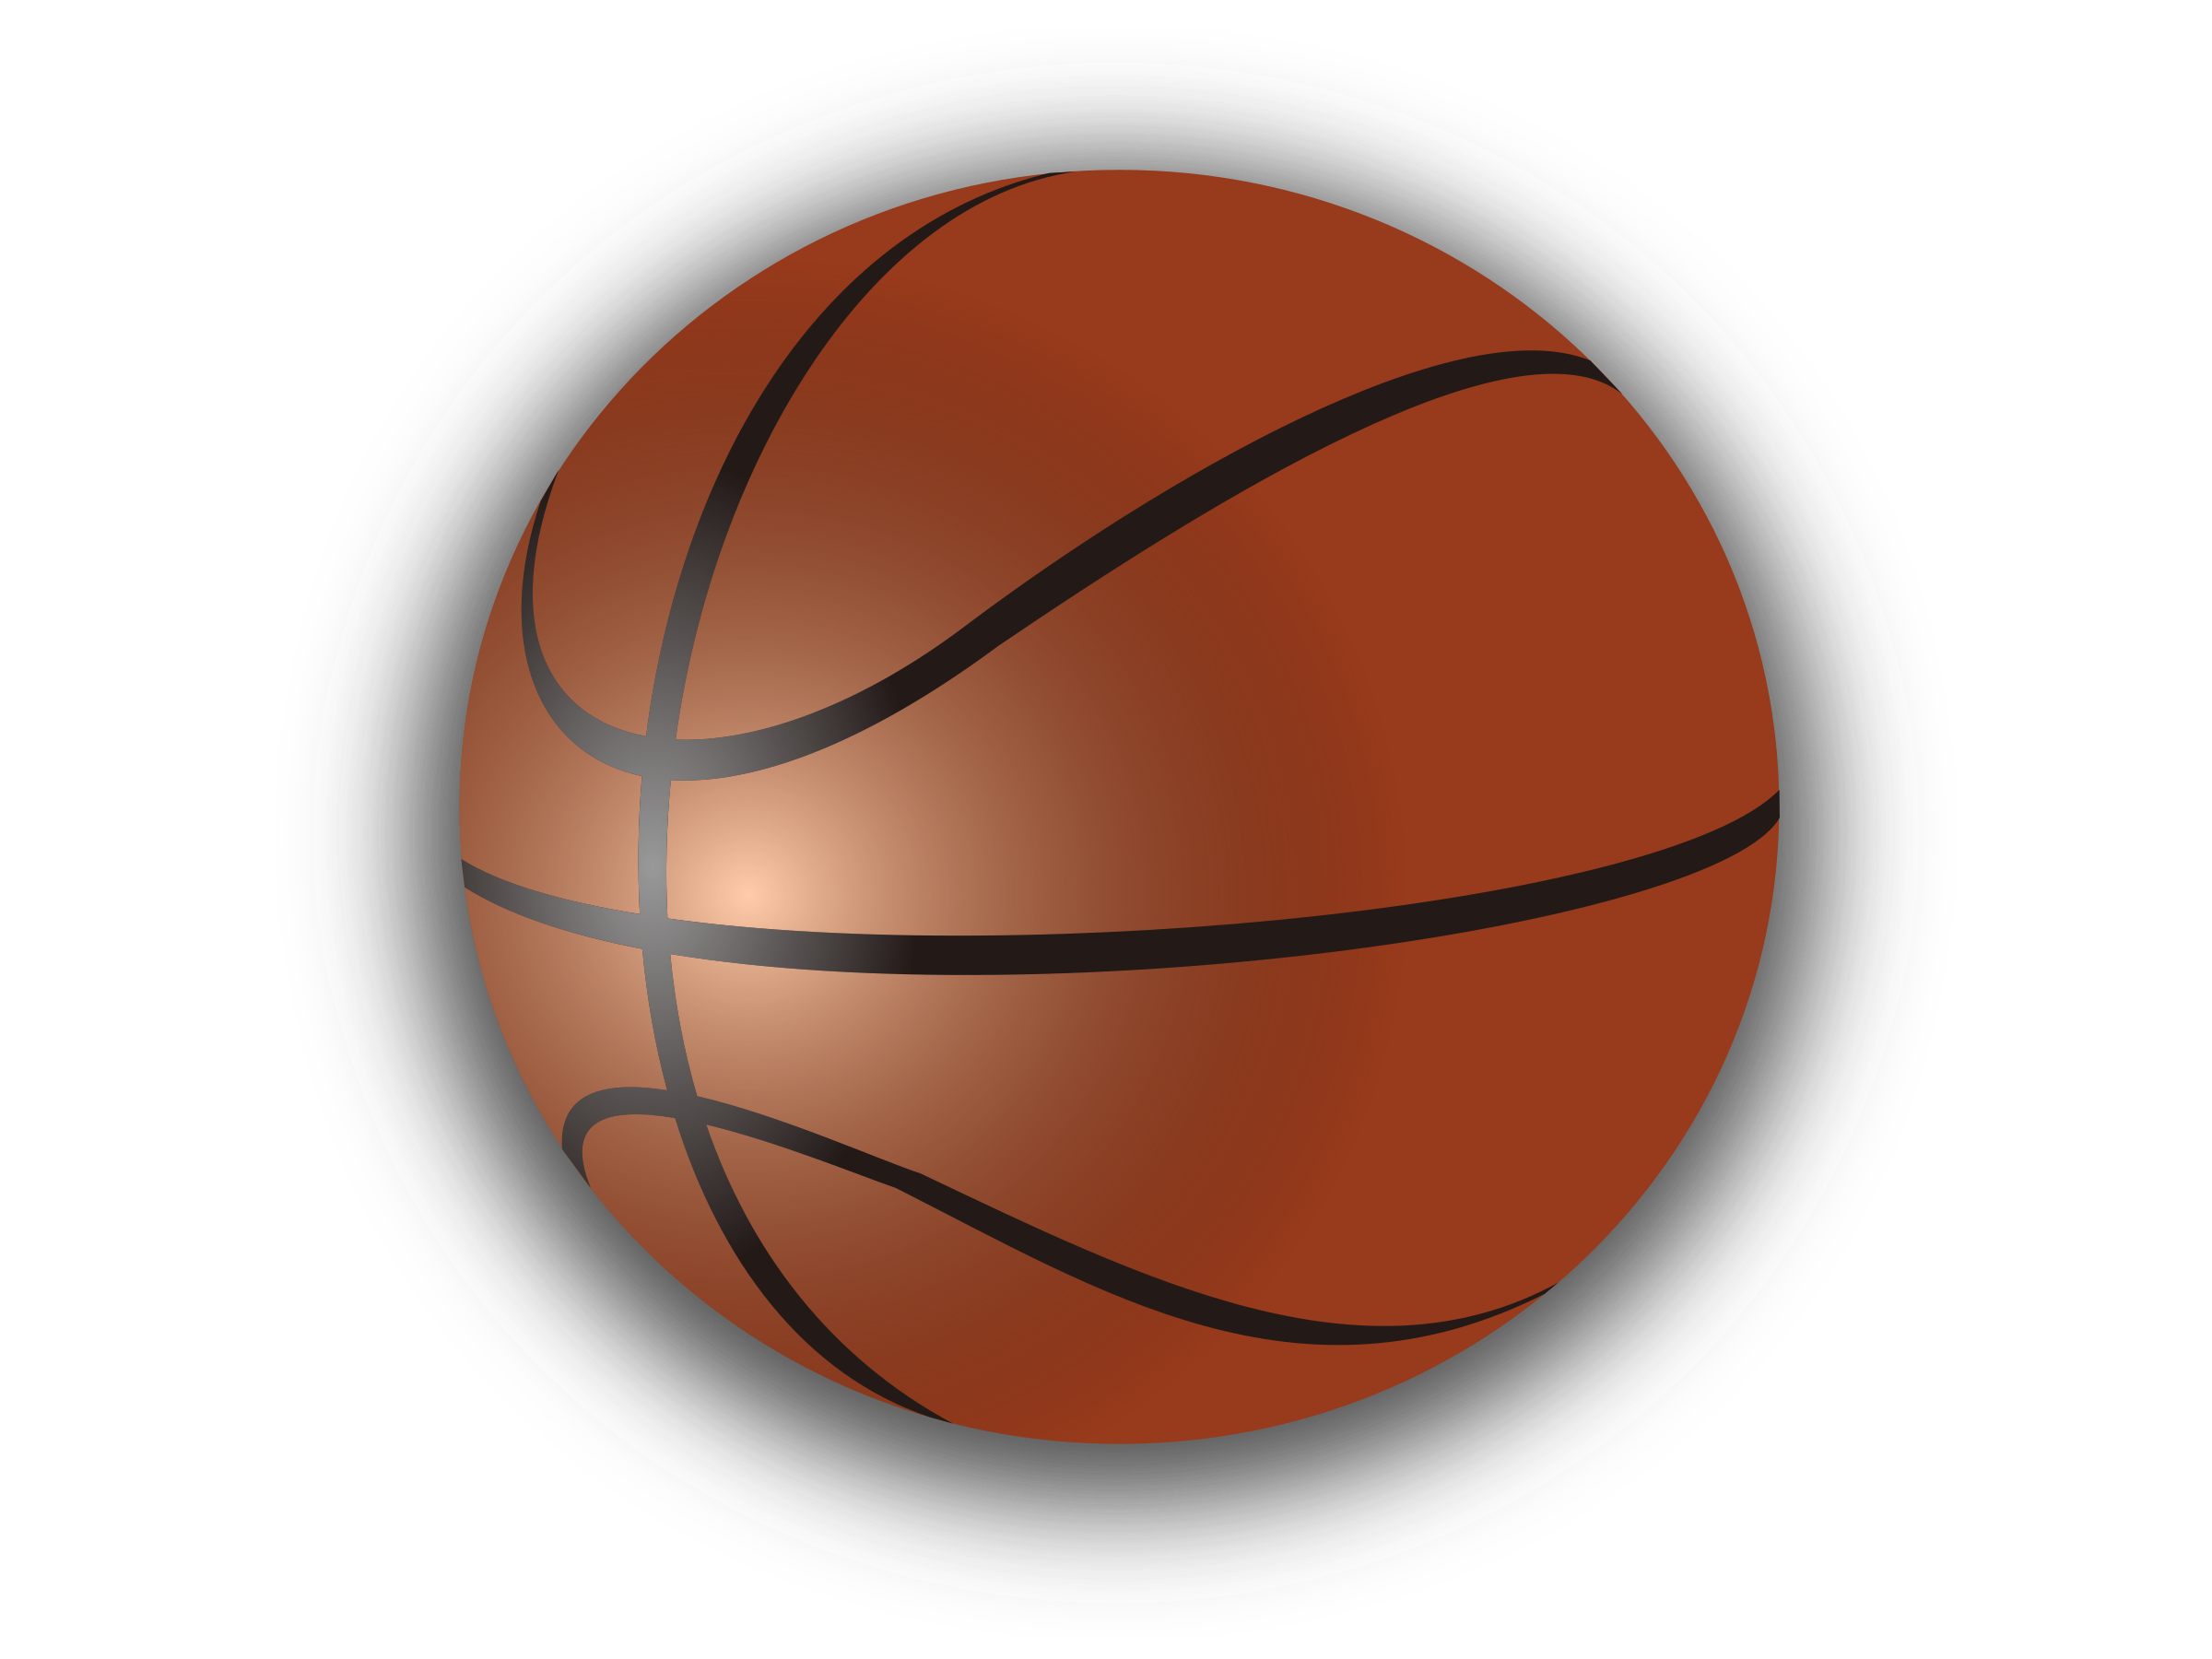 Basketball benched clipart. Sports bench png transparent